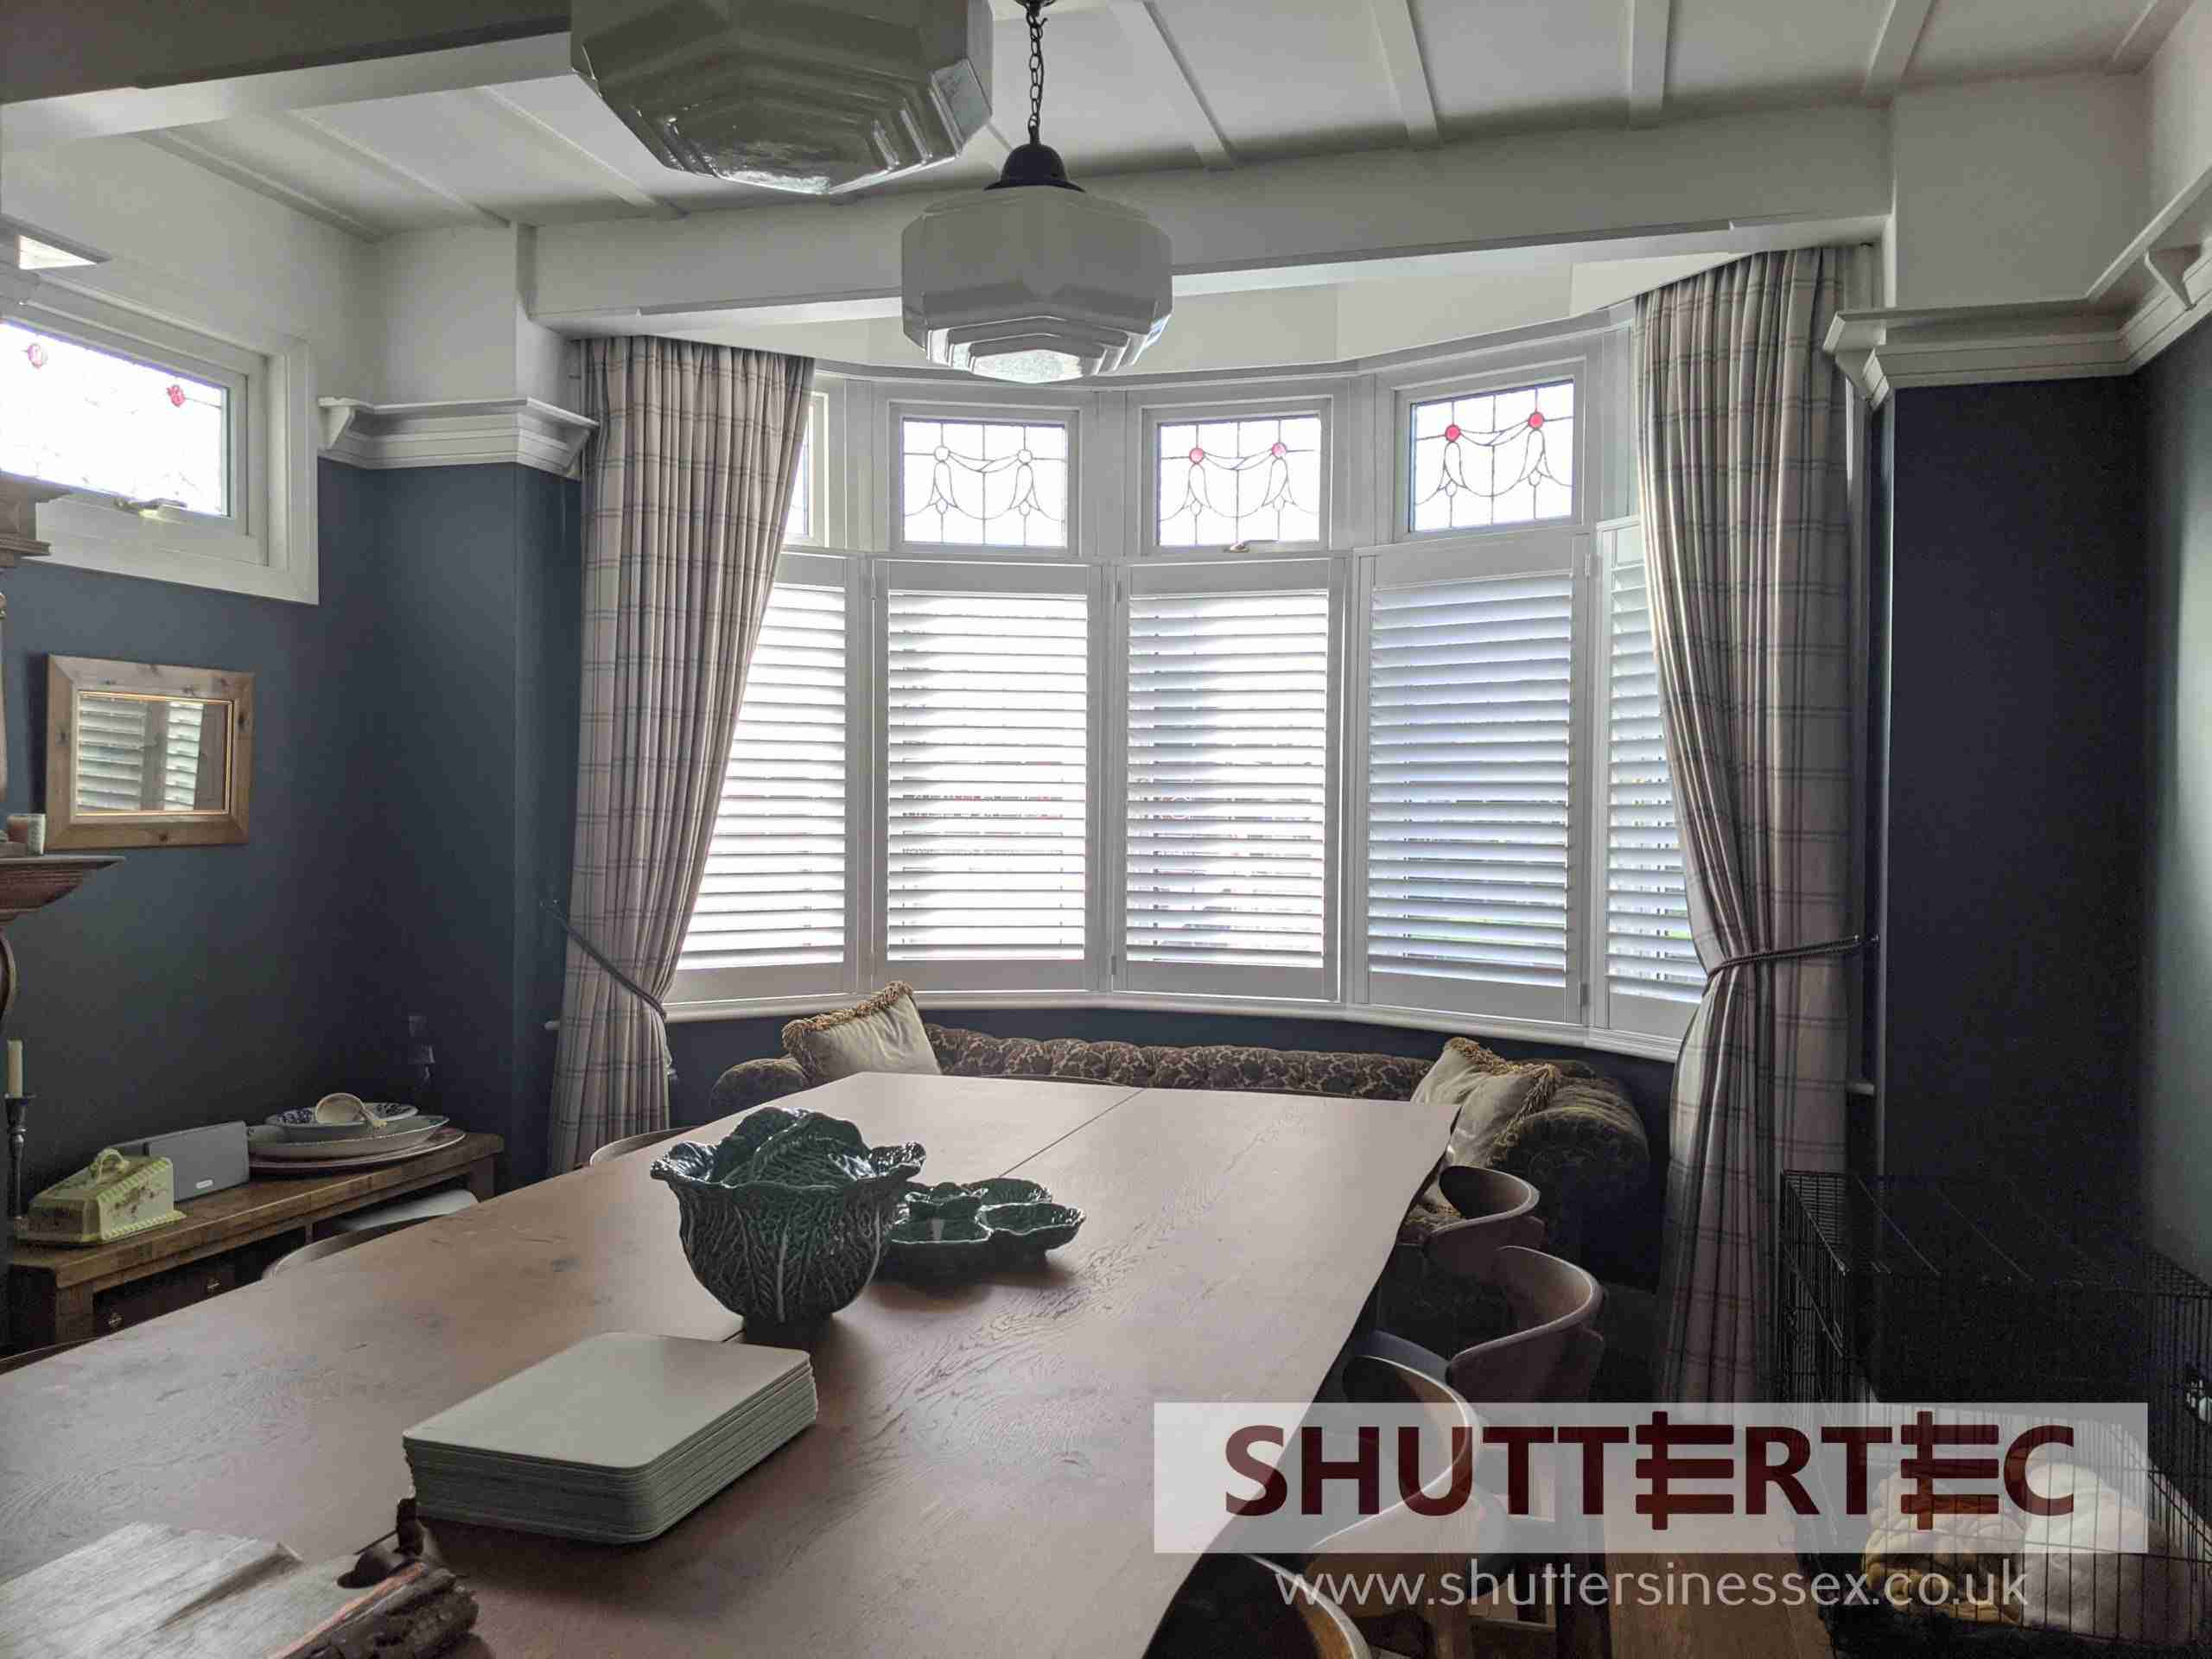 Title graphic for Shuttertec blog about shutters and curtains